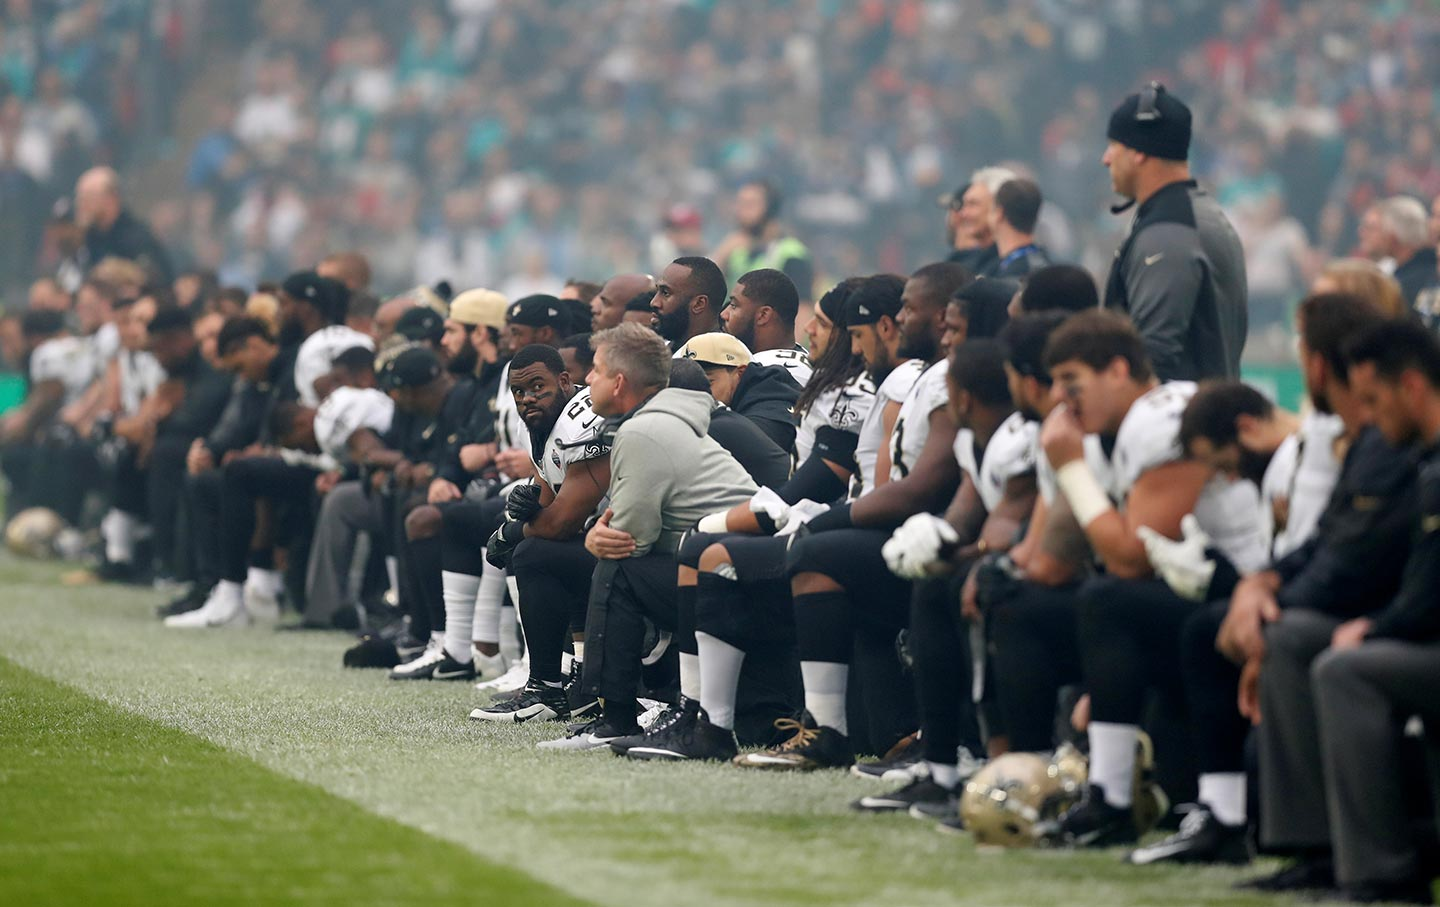 New Orleans Saints players take the knee